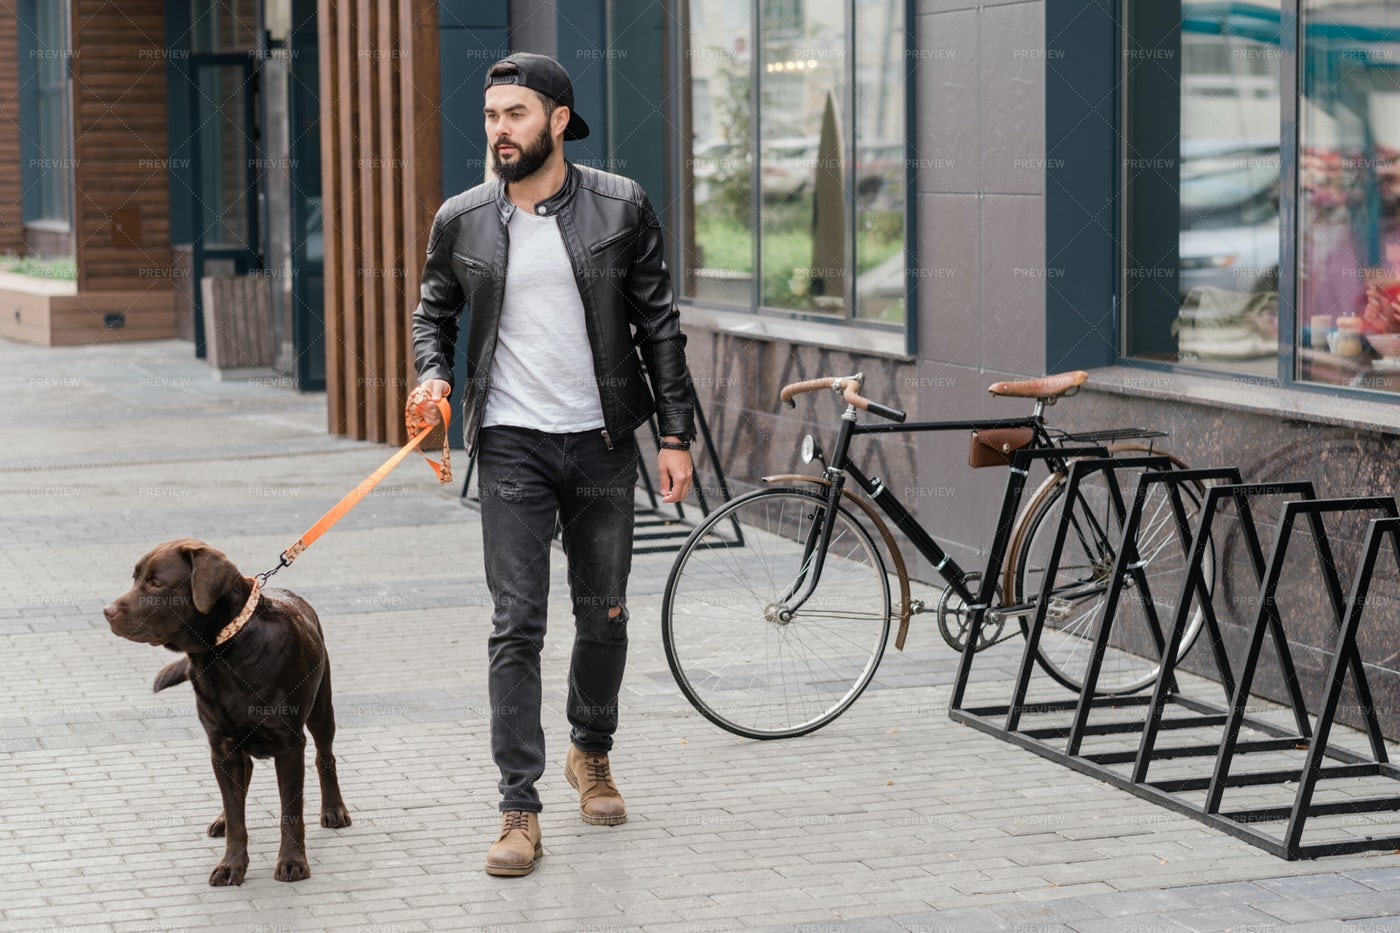 Handsome Guy In Casualwear Holding...: Stock Photos